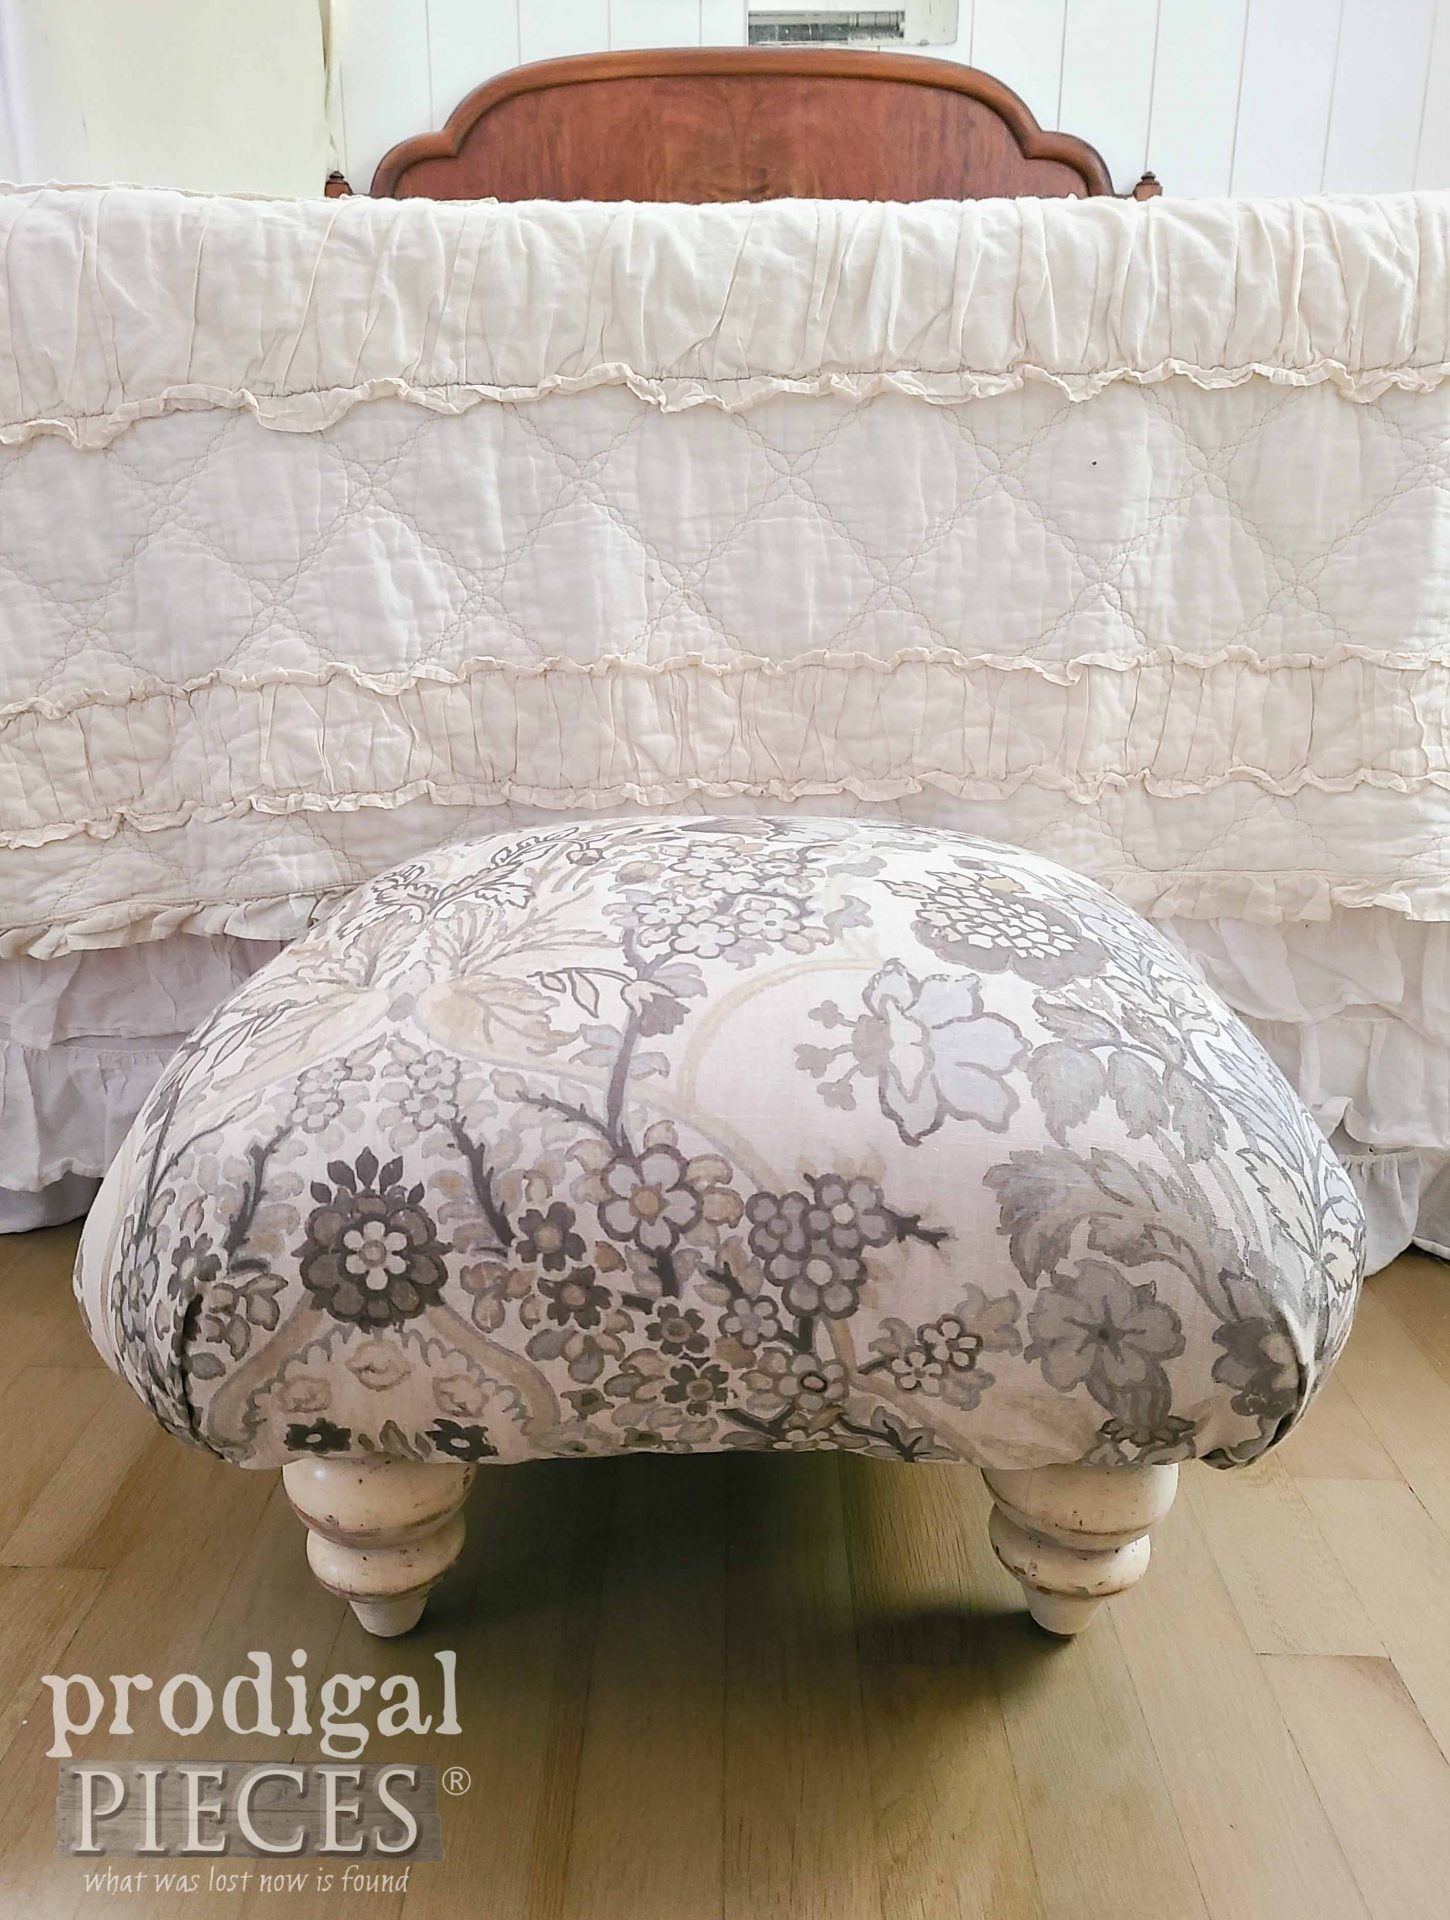 Linen DIY Upcycled Ottoman Created by Larissa of Prodigal Pieces | prodigalpieces.com #prodigalpieces #diy #furniture